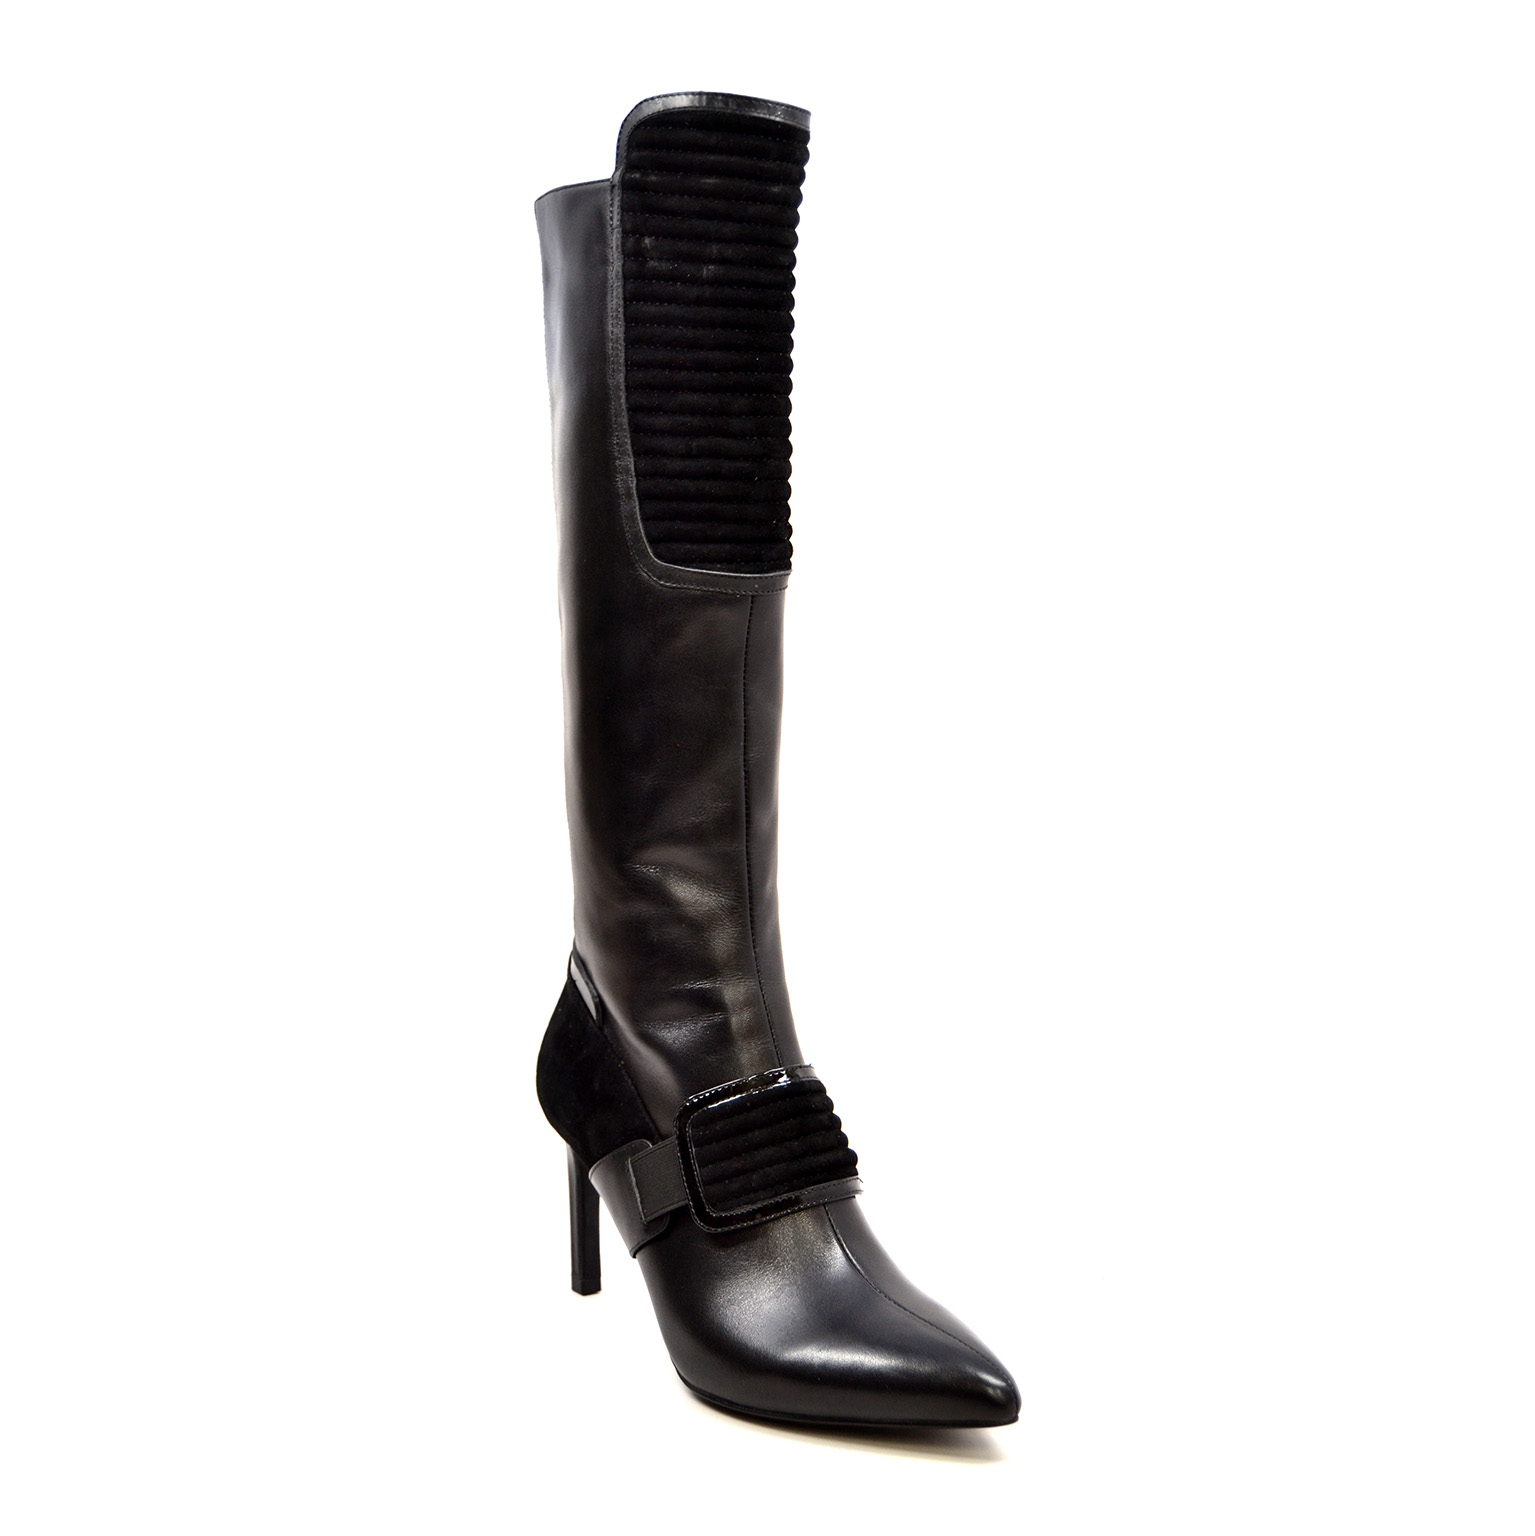 2656523405 SoleMani Women's Lucky Black Leather Narrow calf [luckyblack ...